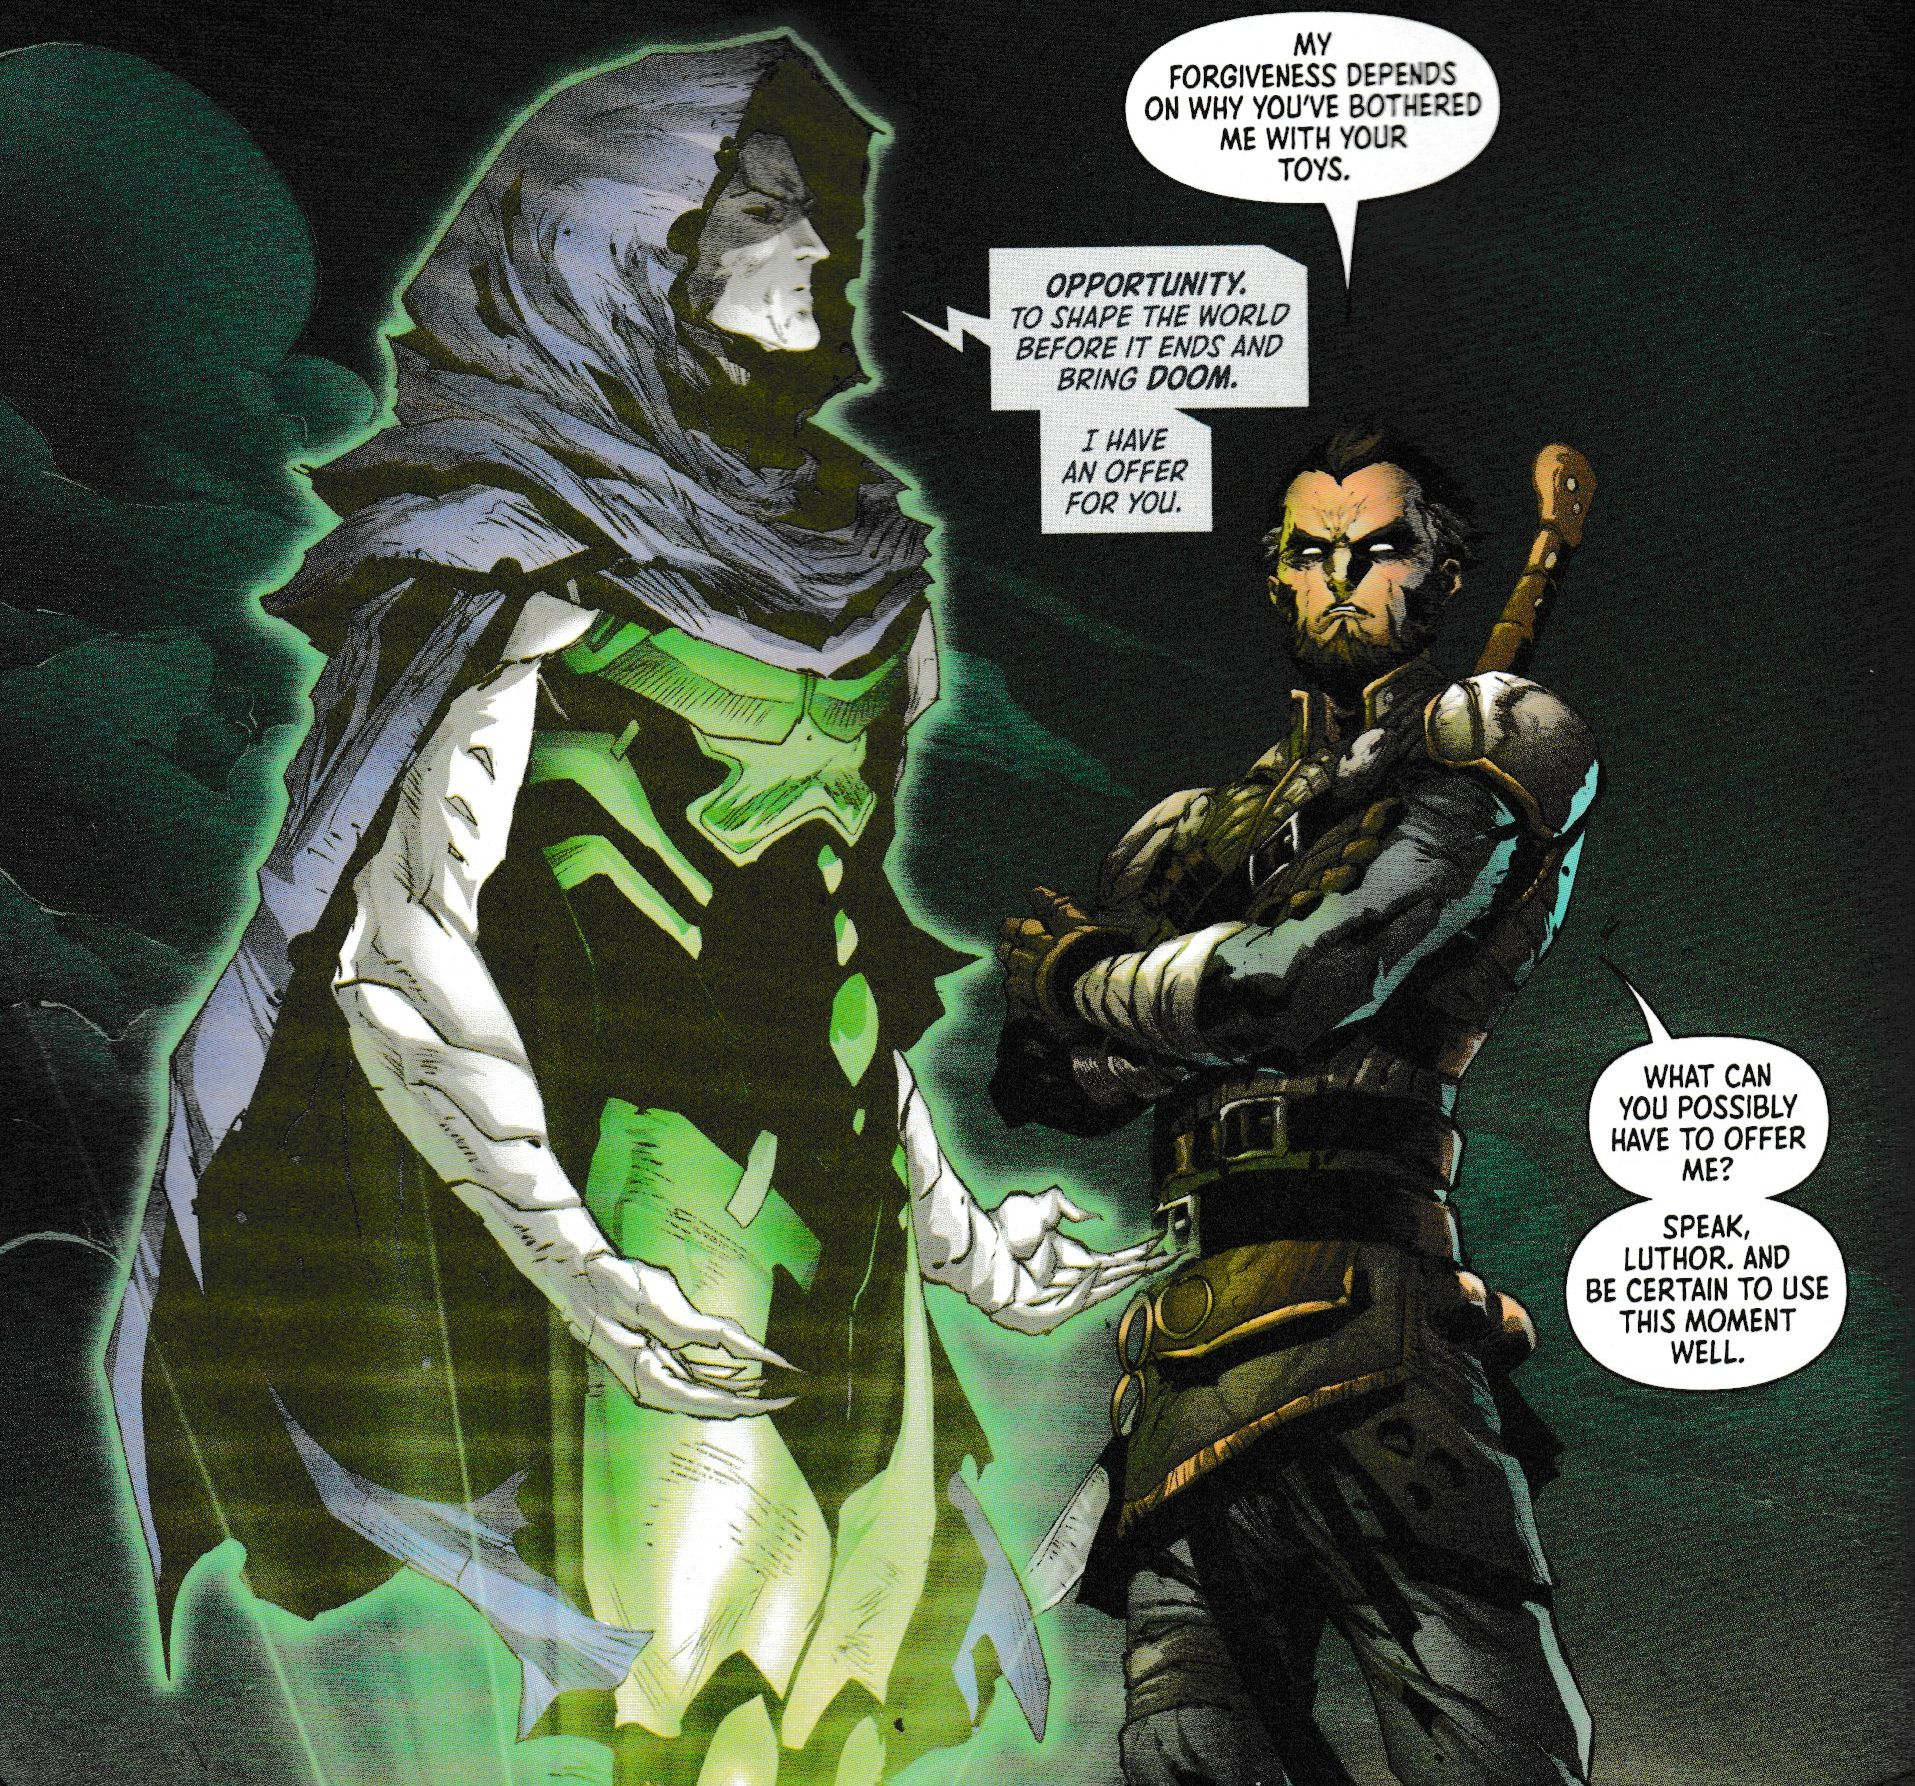 The Offers Being Made (Or Not) by Apex Lex in DC's Year of The Villain, Today (Spoilers)